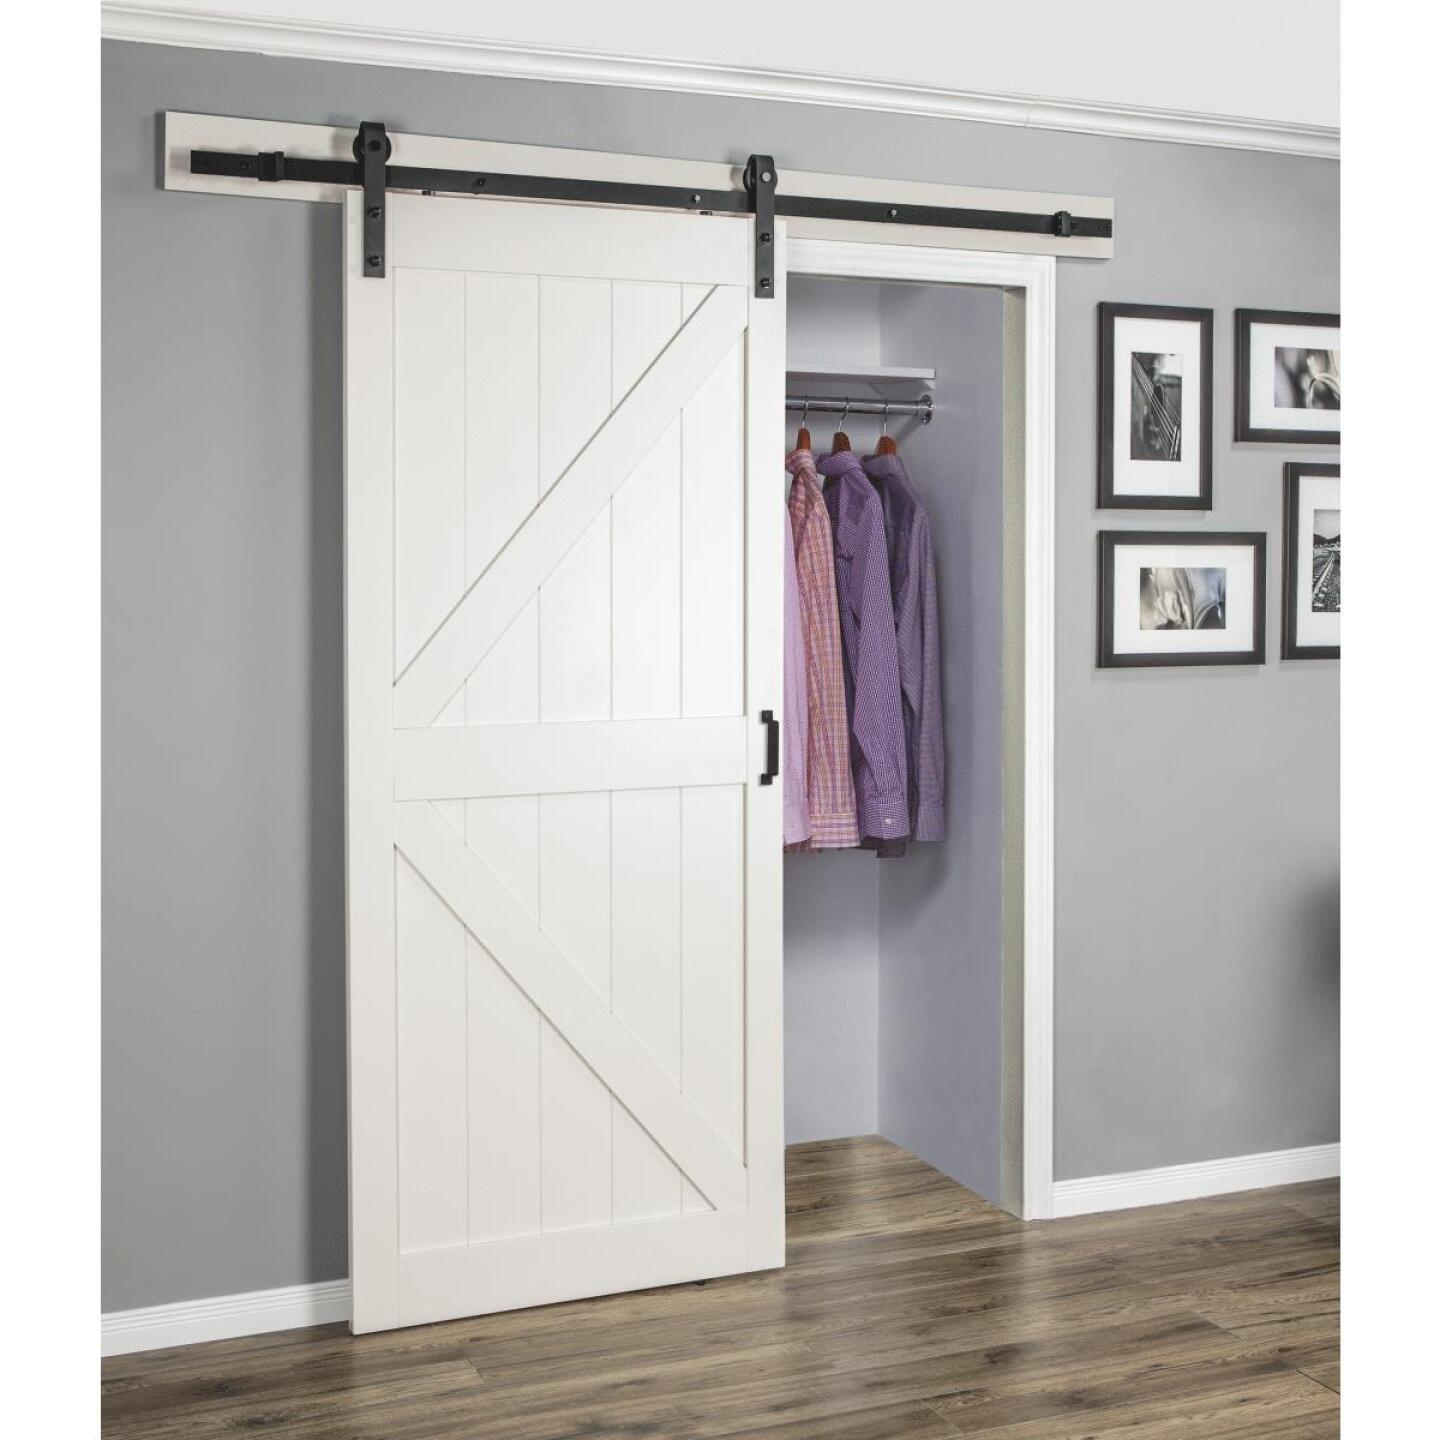 Erias Home Designs 36 In. x 84 In. x 1-3/8 In. K-Style Stone Barn Door Kit Image 2